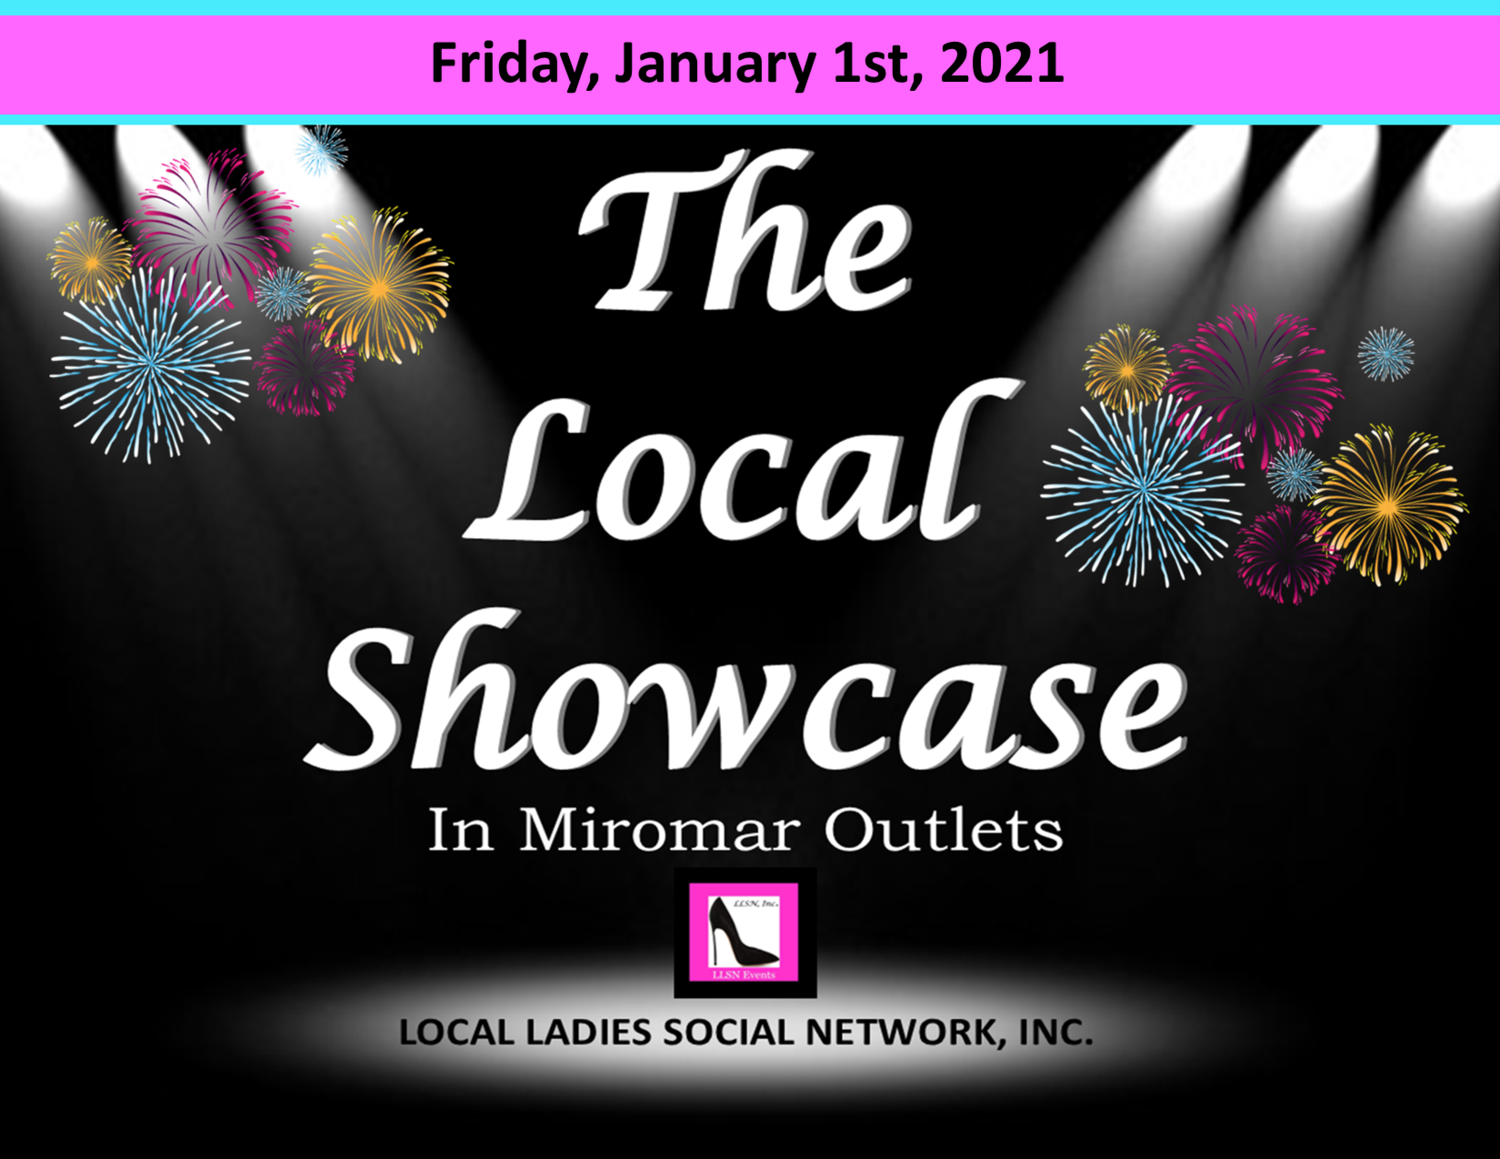 Friday, January 1st, 2021 11am-7pm